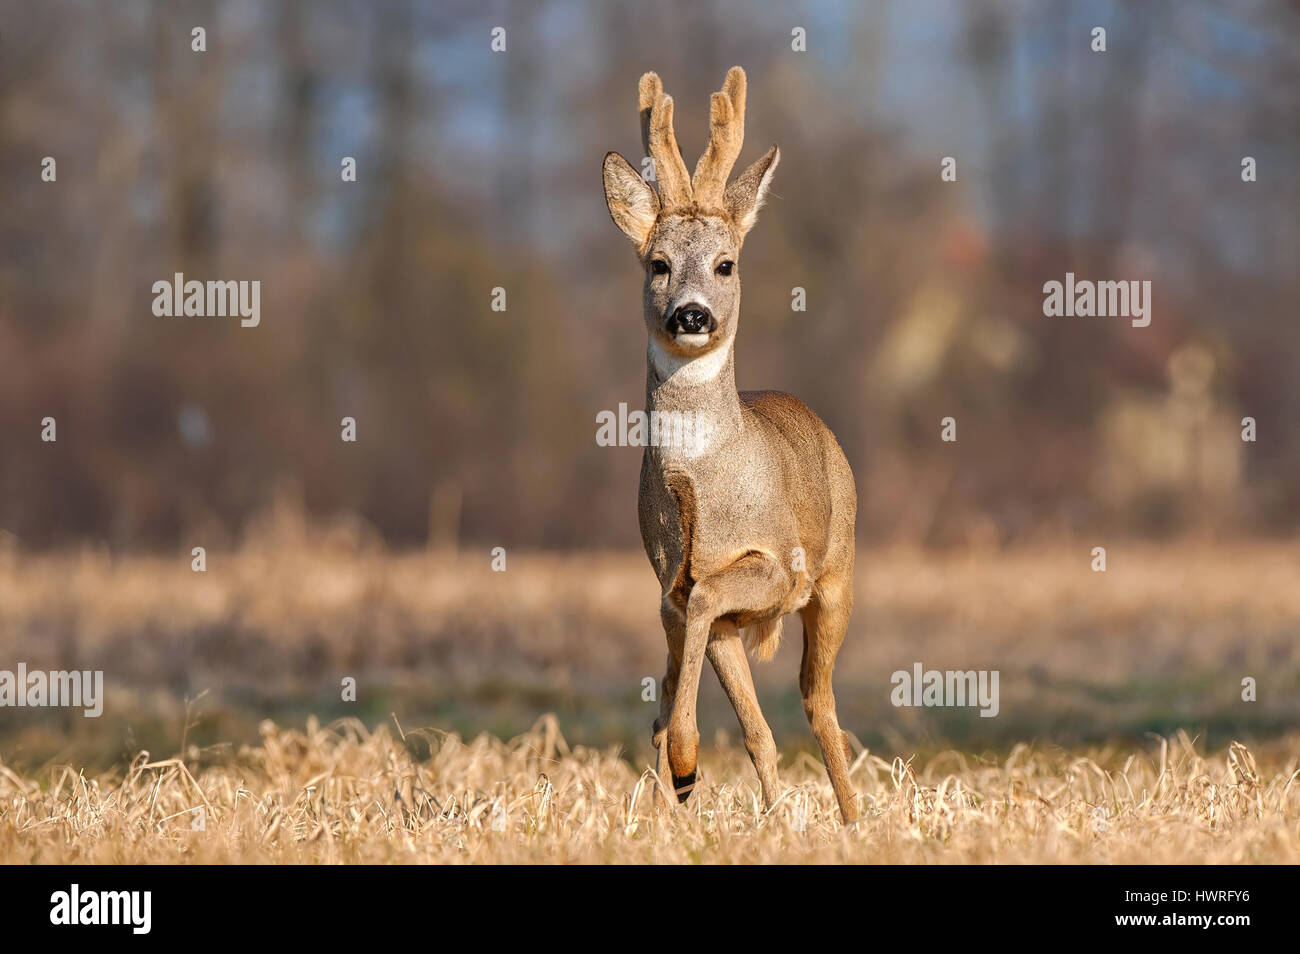 Wild roe buck standing in a field - Stock Image